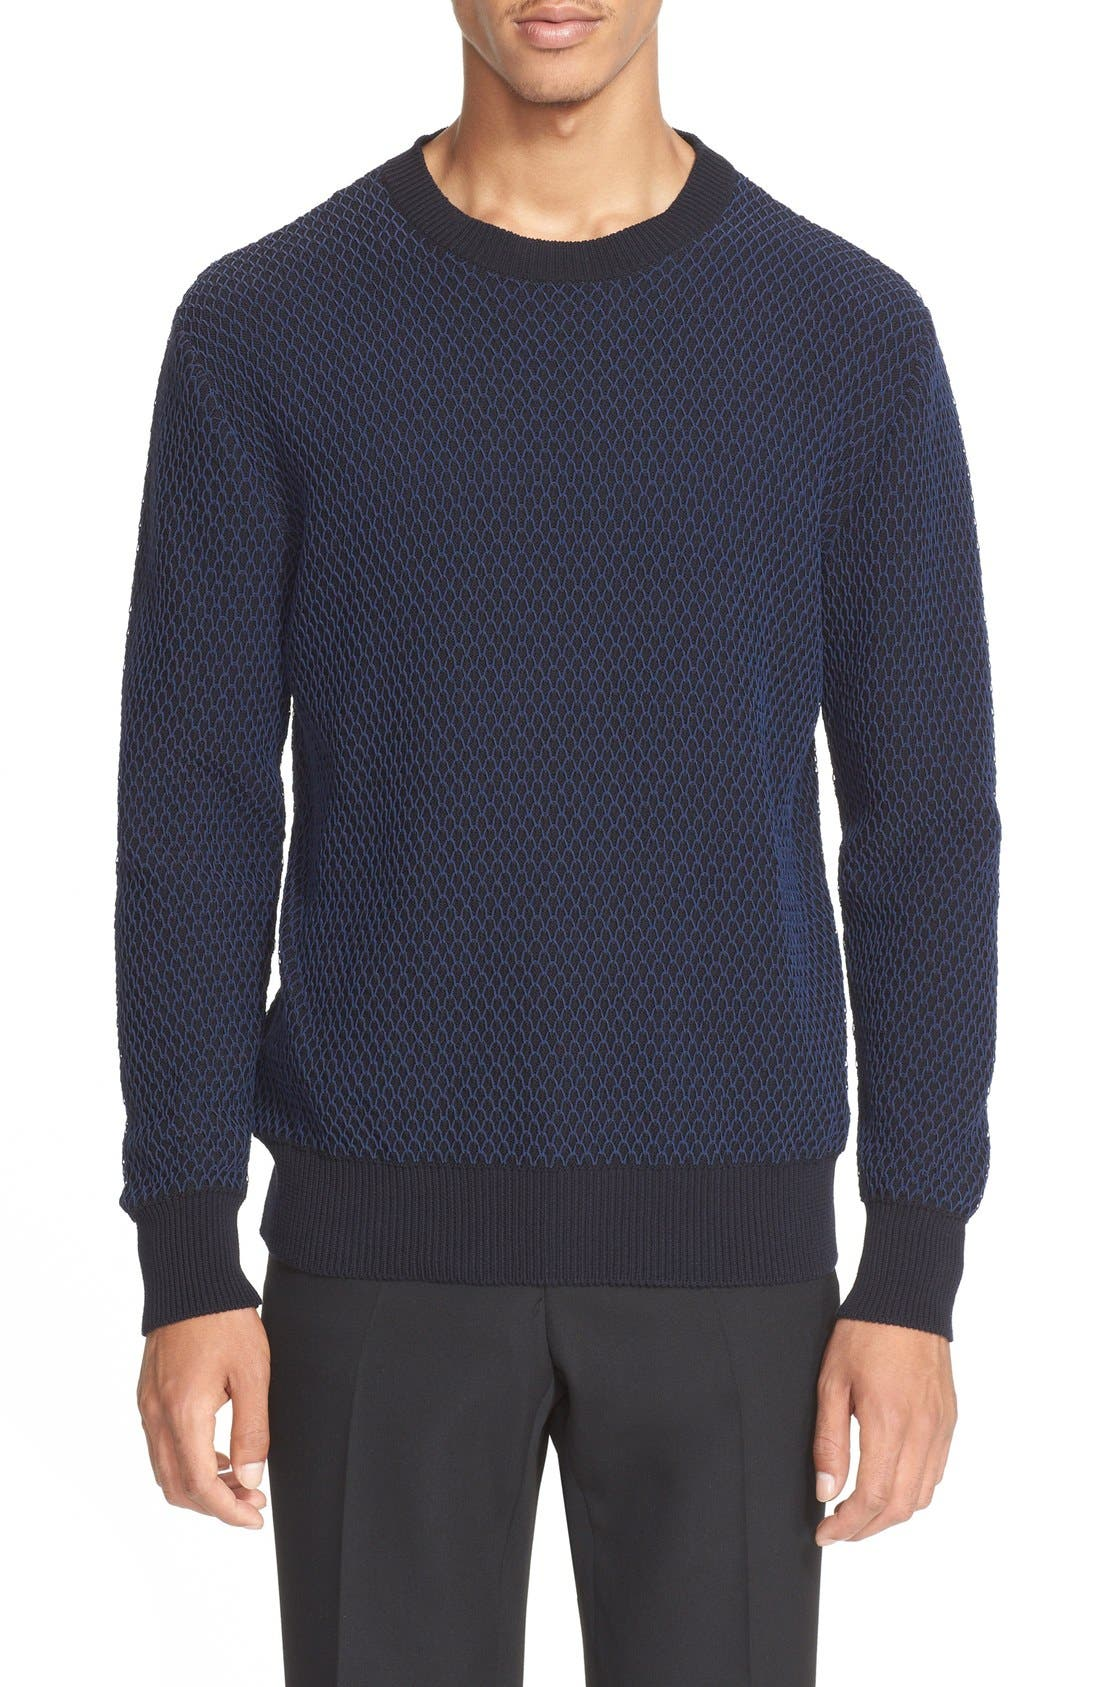 Givenchy 'Fishnet' Crewneck Sweater